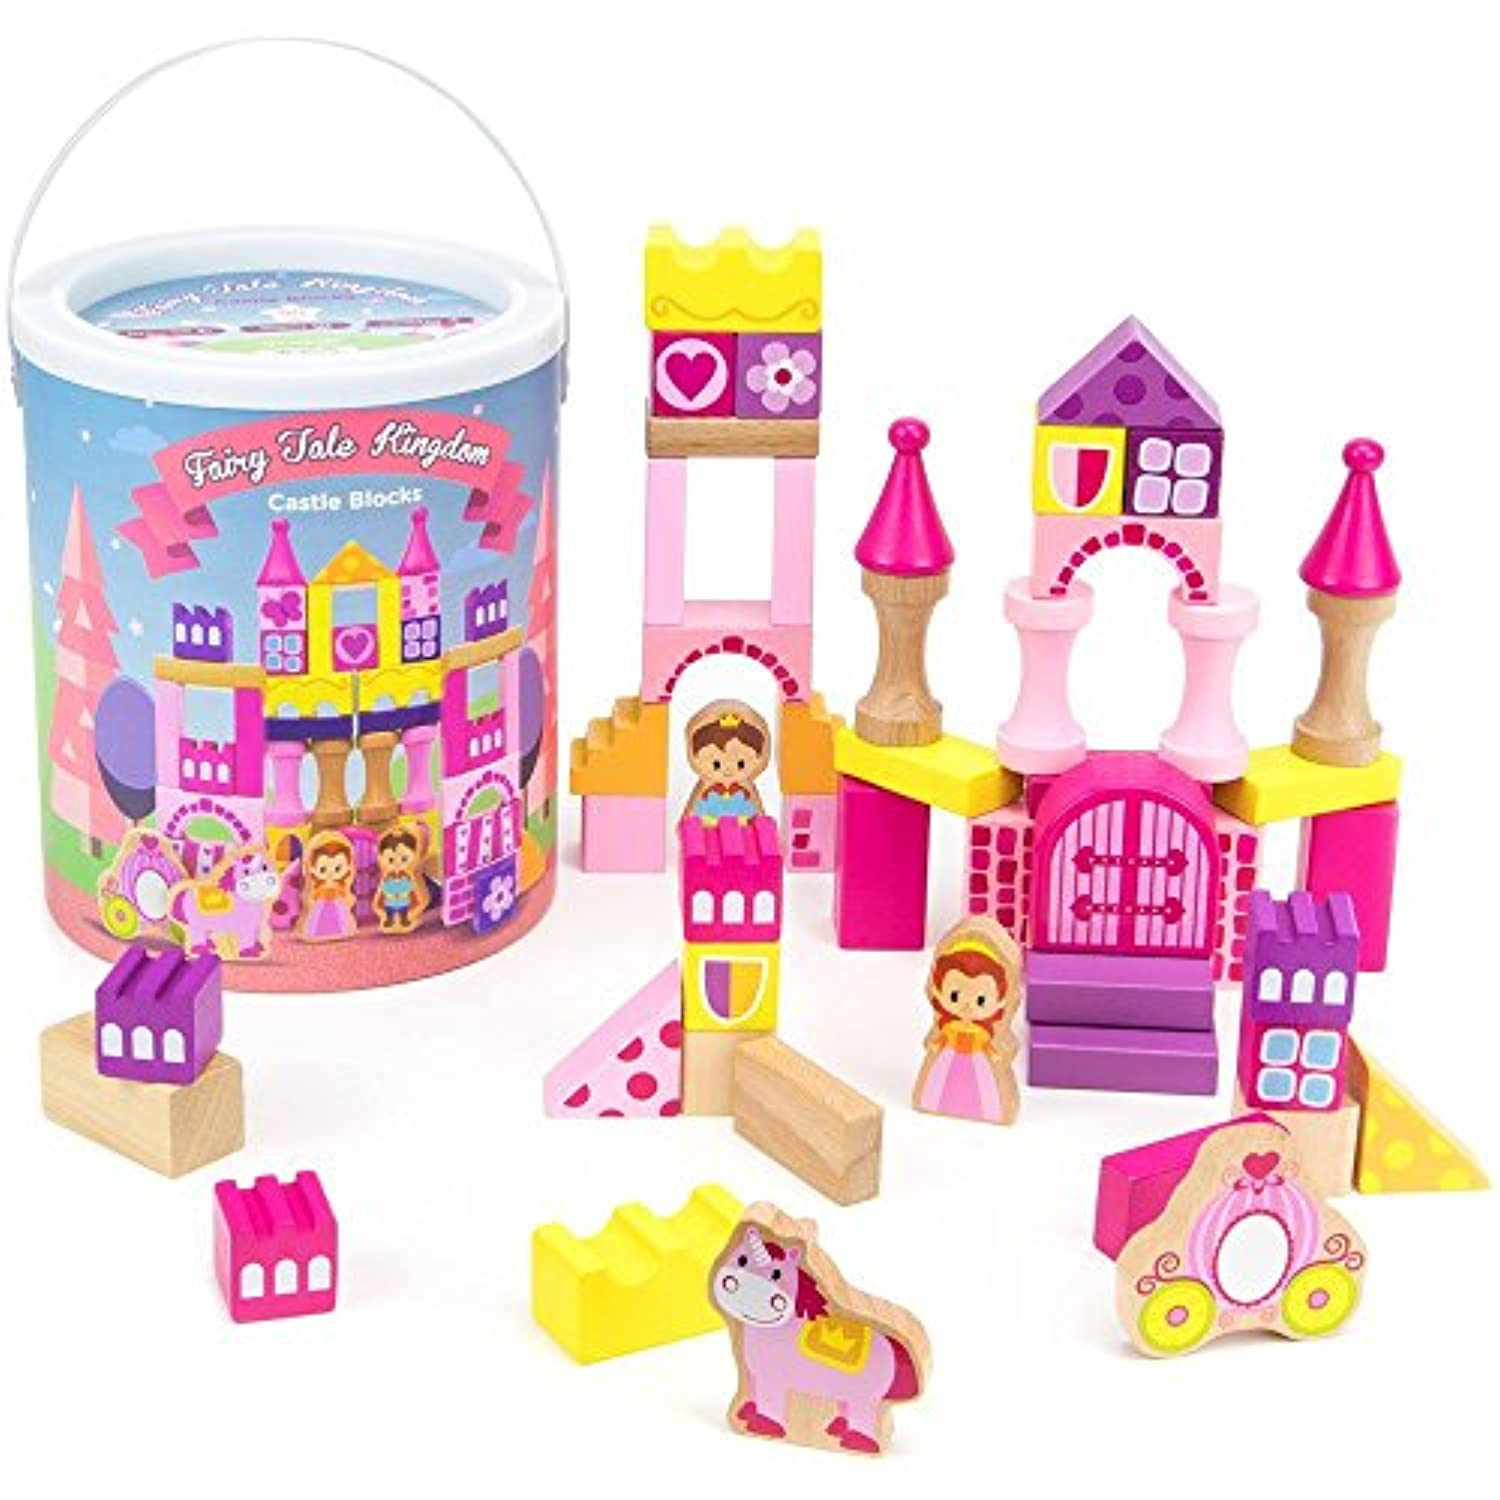 by-imagination世代Girls Toy Playset , 50個プリンセスPrince Fairy Tale Kingdom Kidsプレイセットおもちゃ